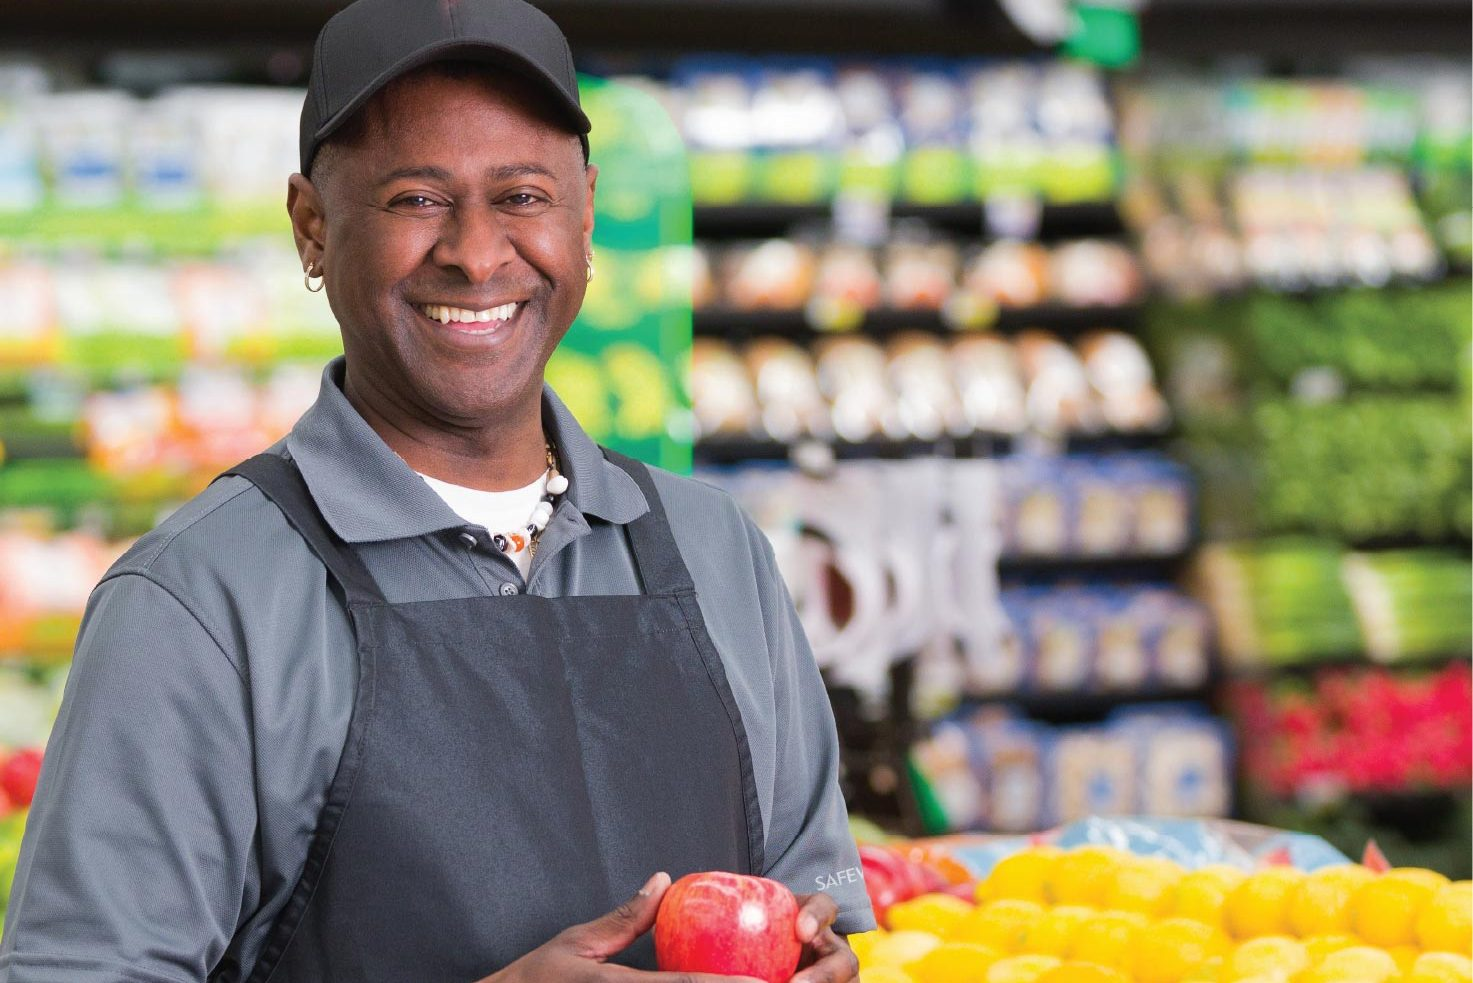 Grocery workers and food prices